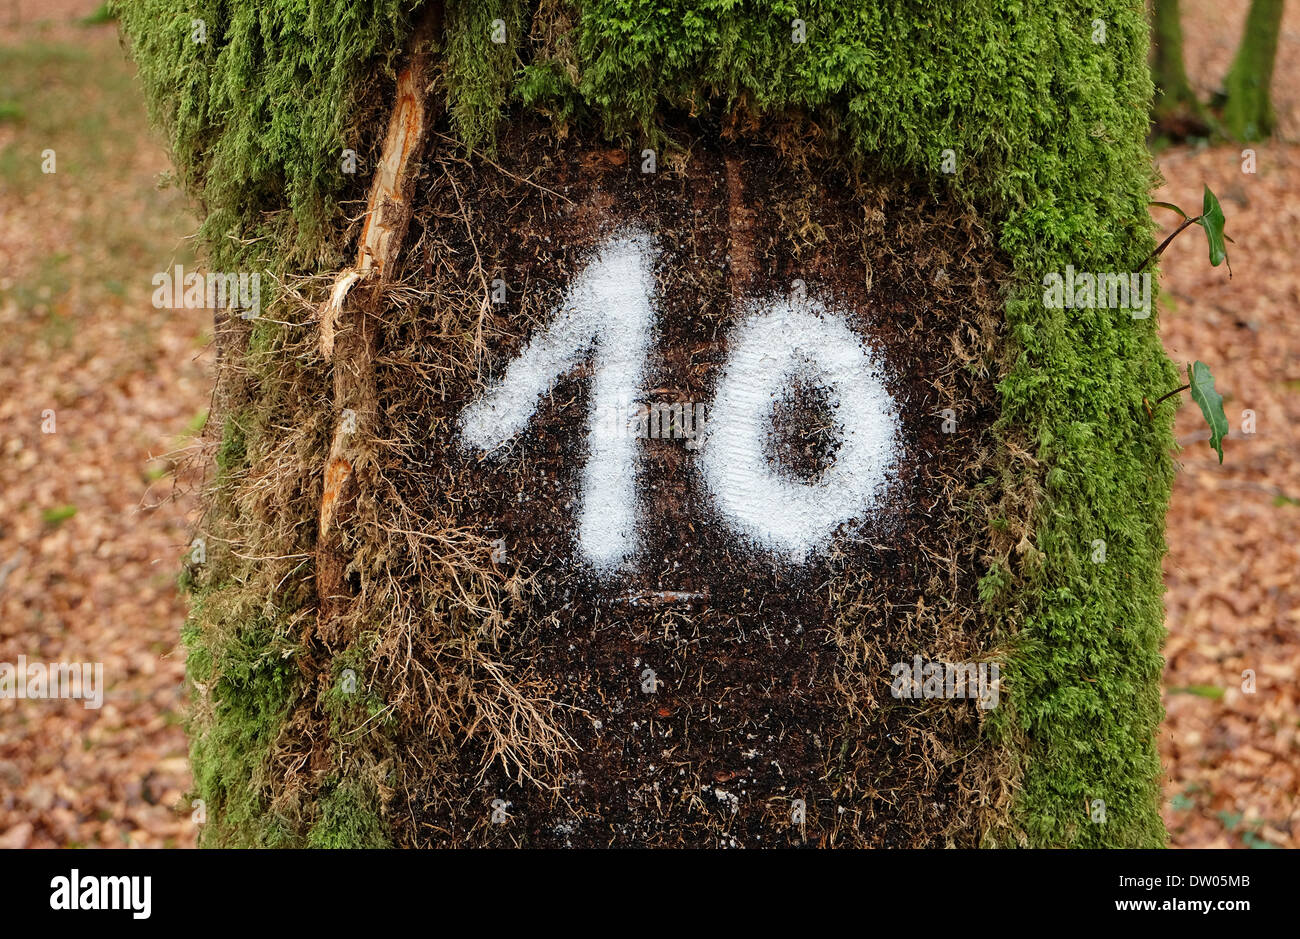 white number 10 painted on tree trunk bark - Stock Image